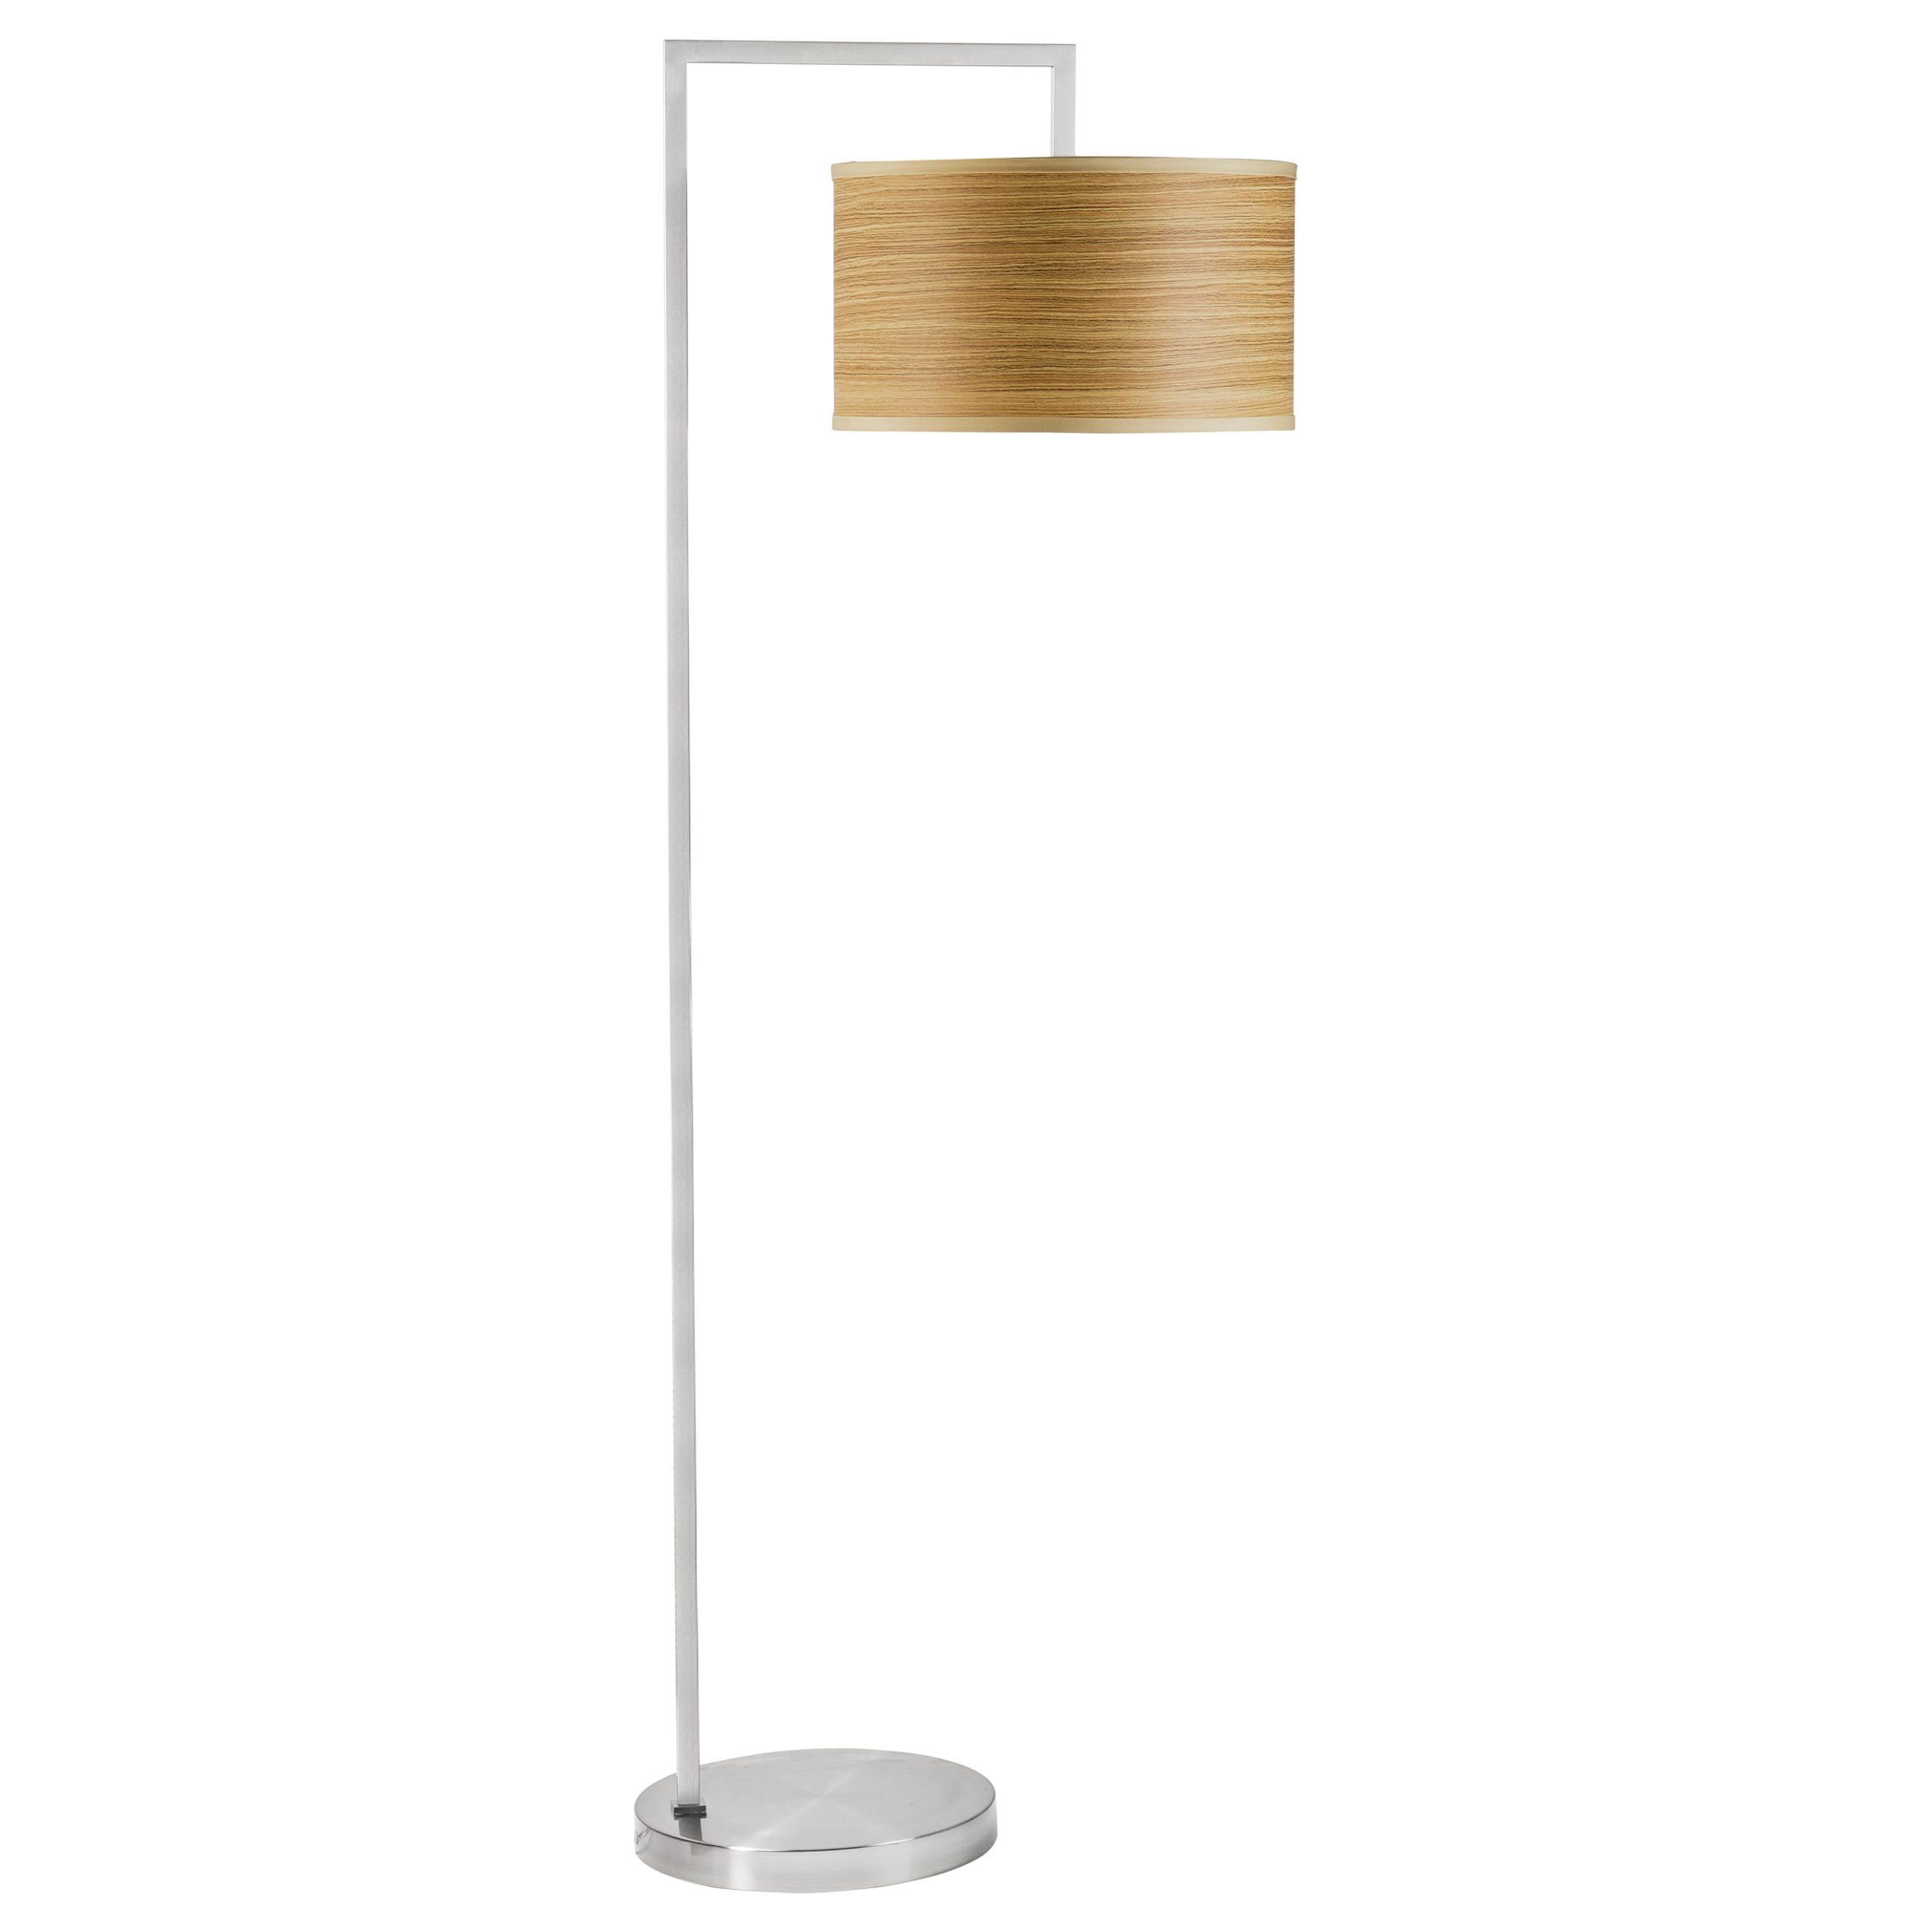 Sleep Lobby Floor Lamp